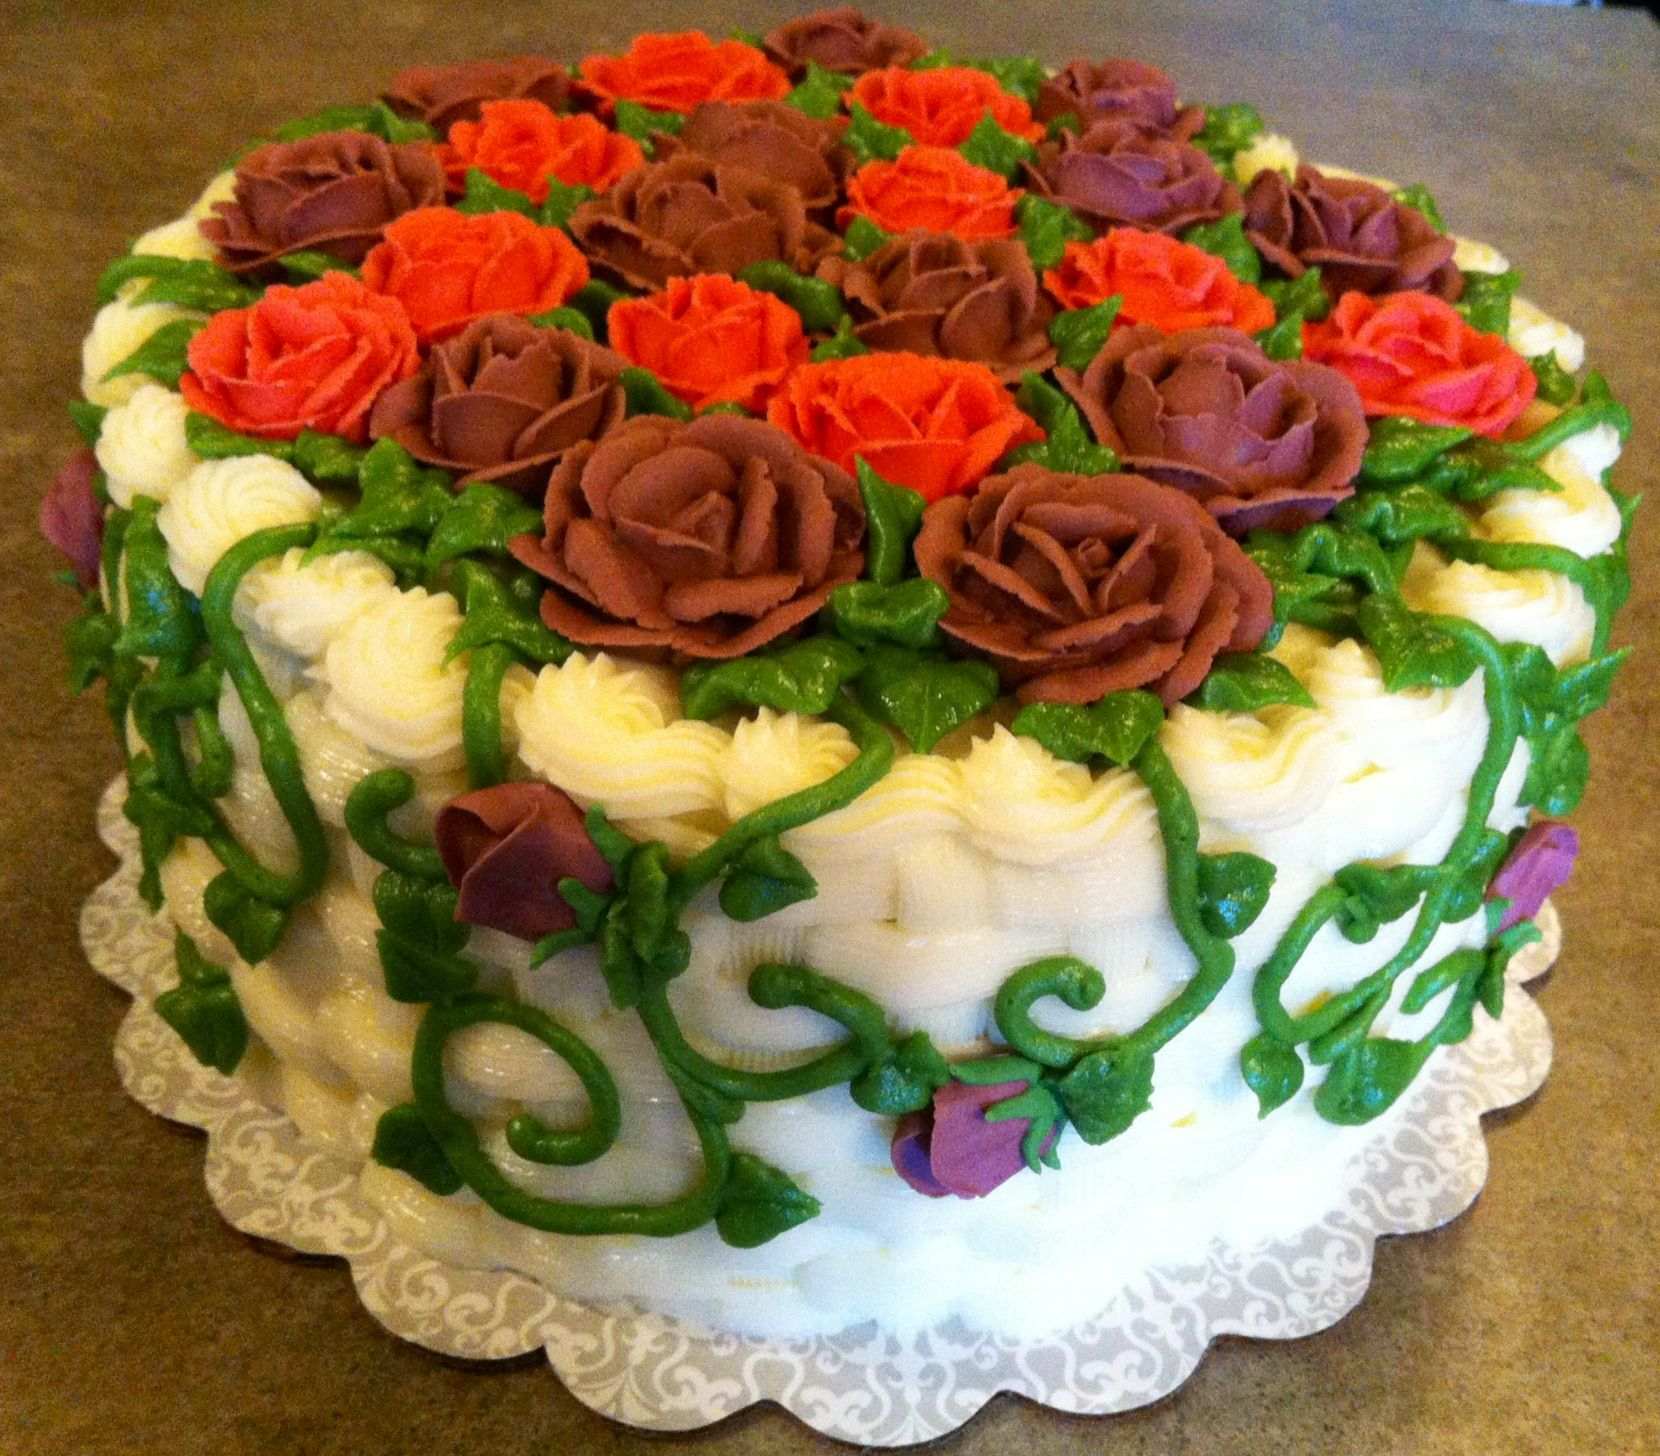 Basket Weaving A Cake : Basket weave cake with roses cakes